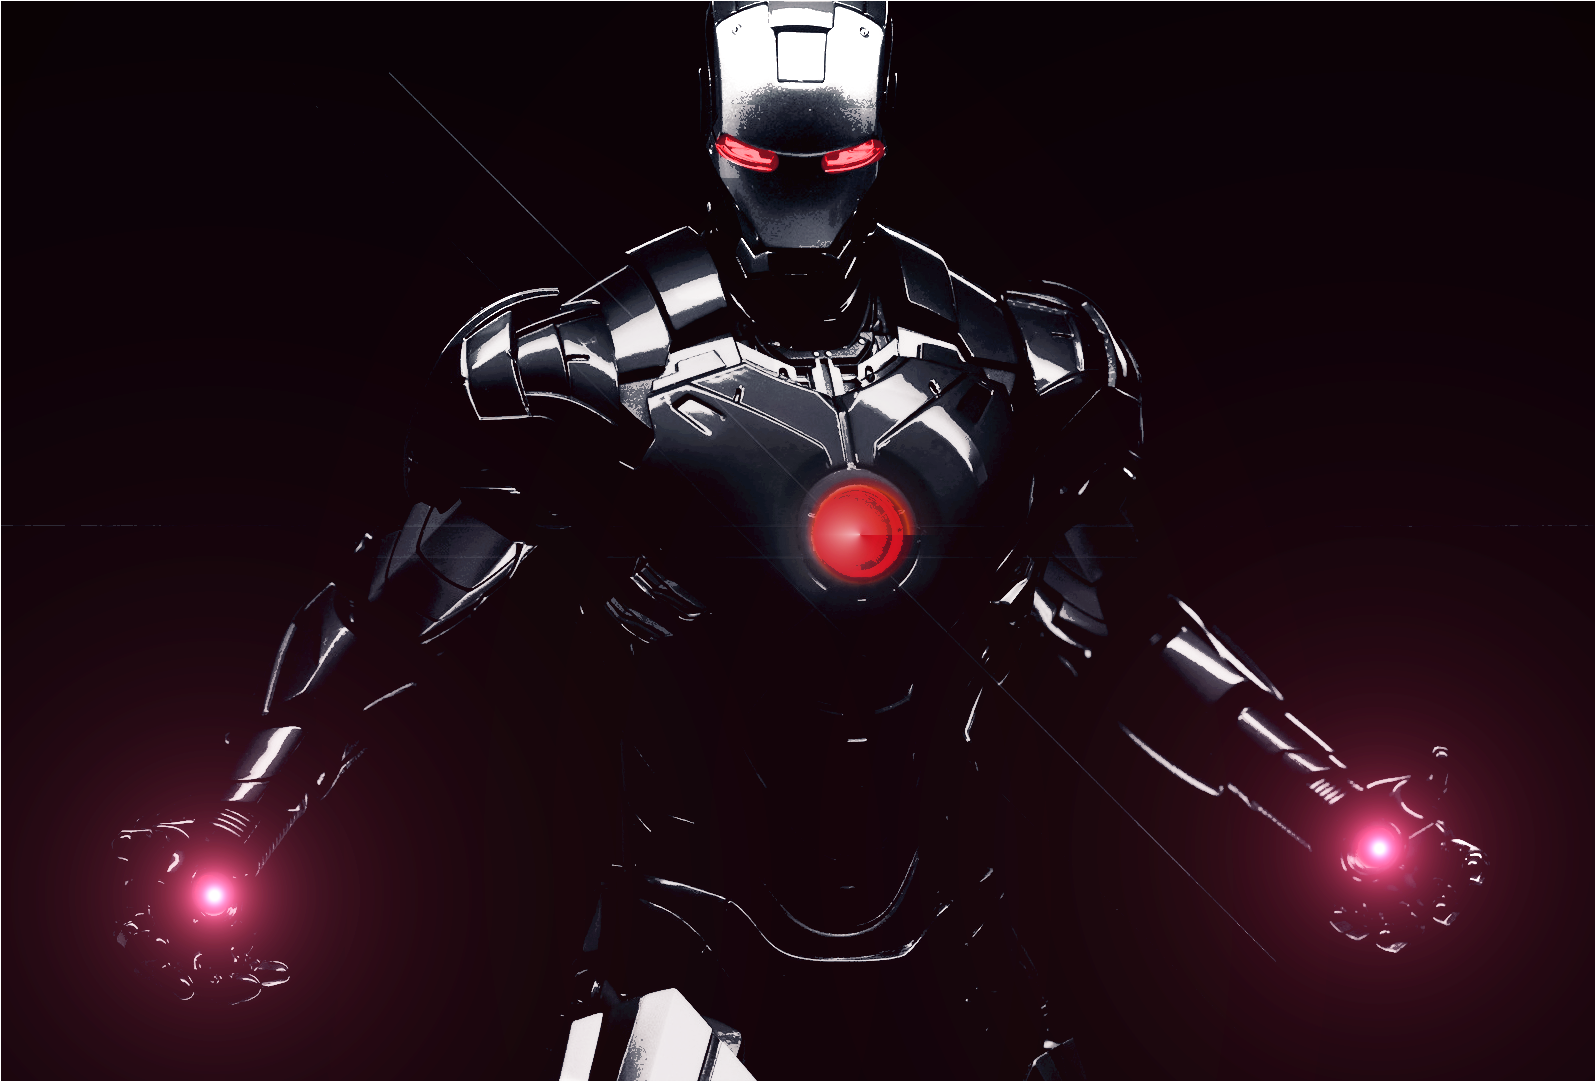 Iron Man in black by deviationanonymous on DeviantArt